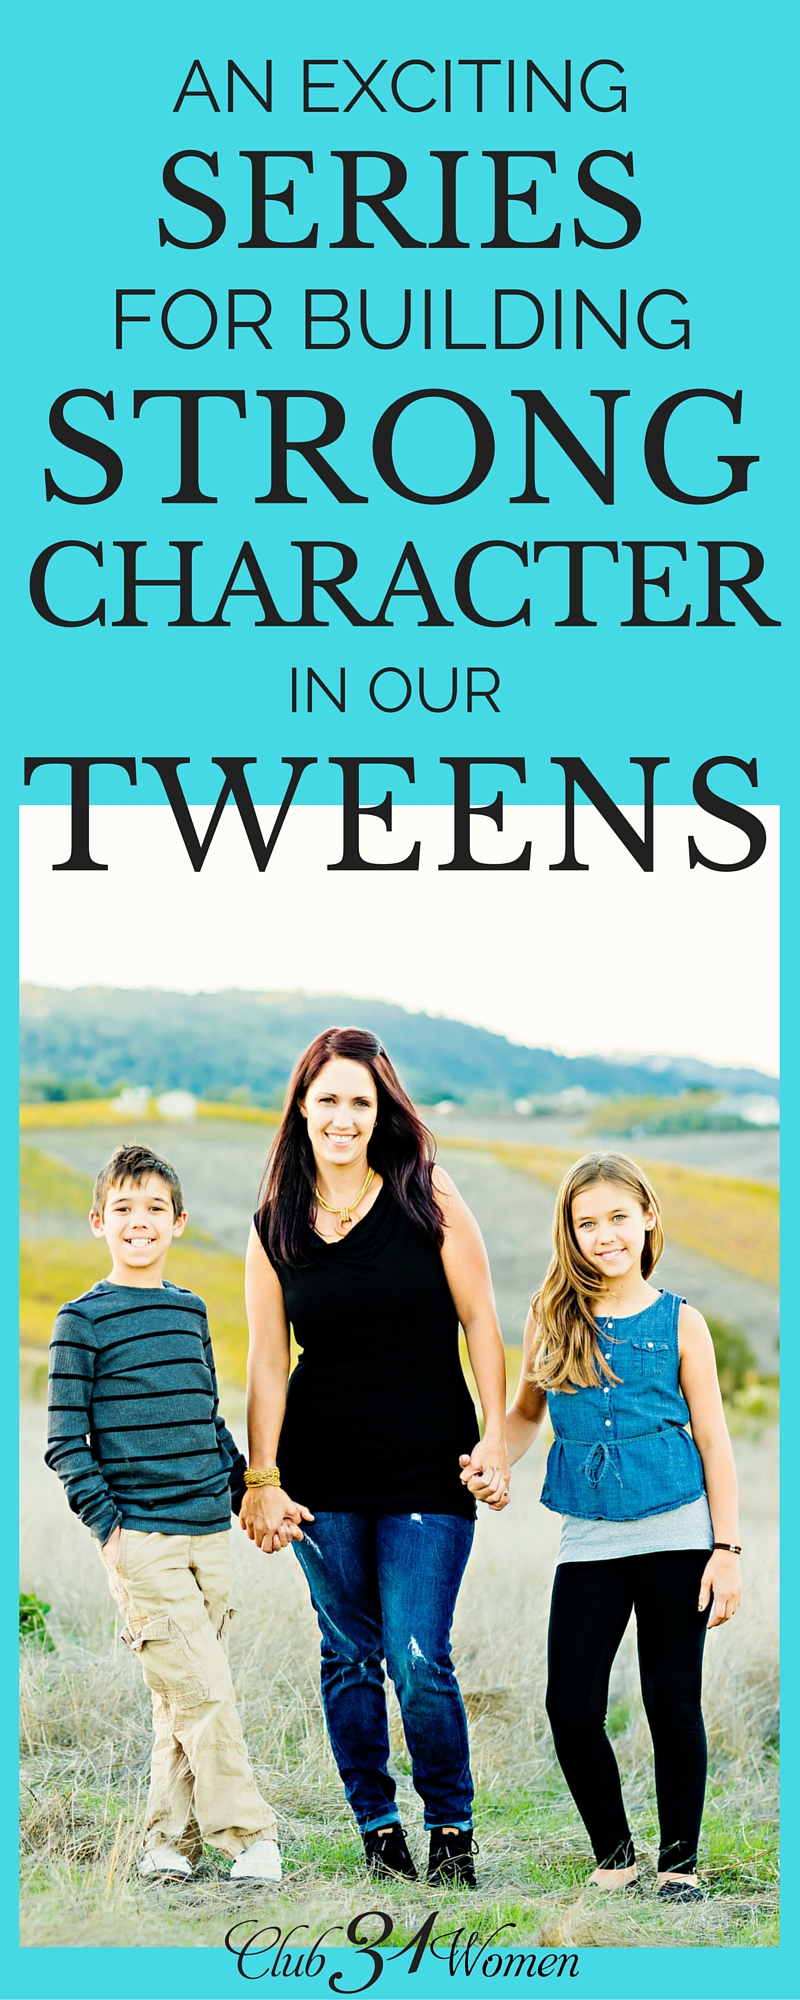 Looking for a character-building resource for your tweens? Here's one of my favorites for encouraging, inspiring, and entertaining those tween-age kids! via @Club31Women